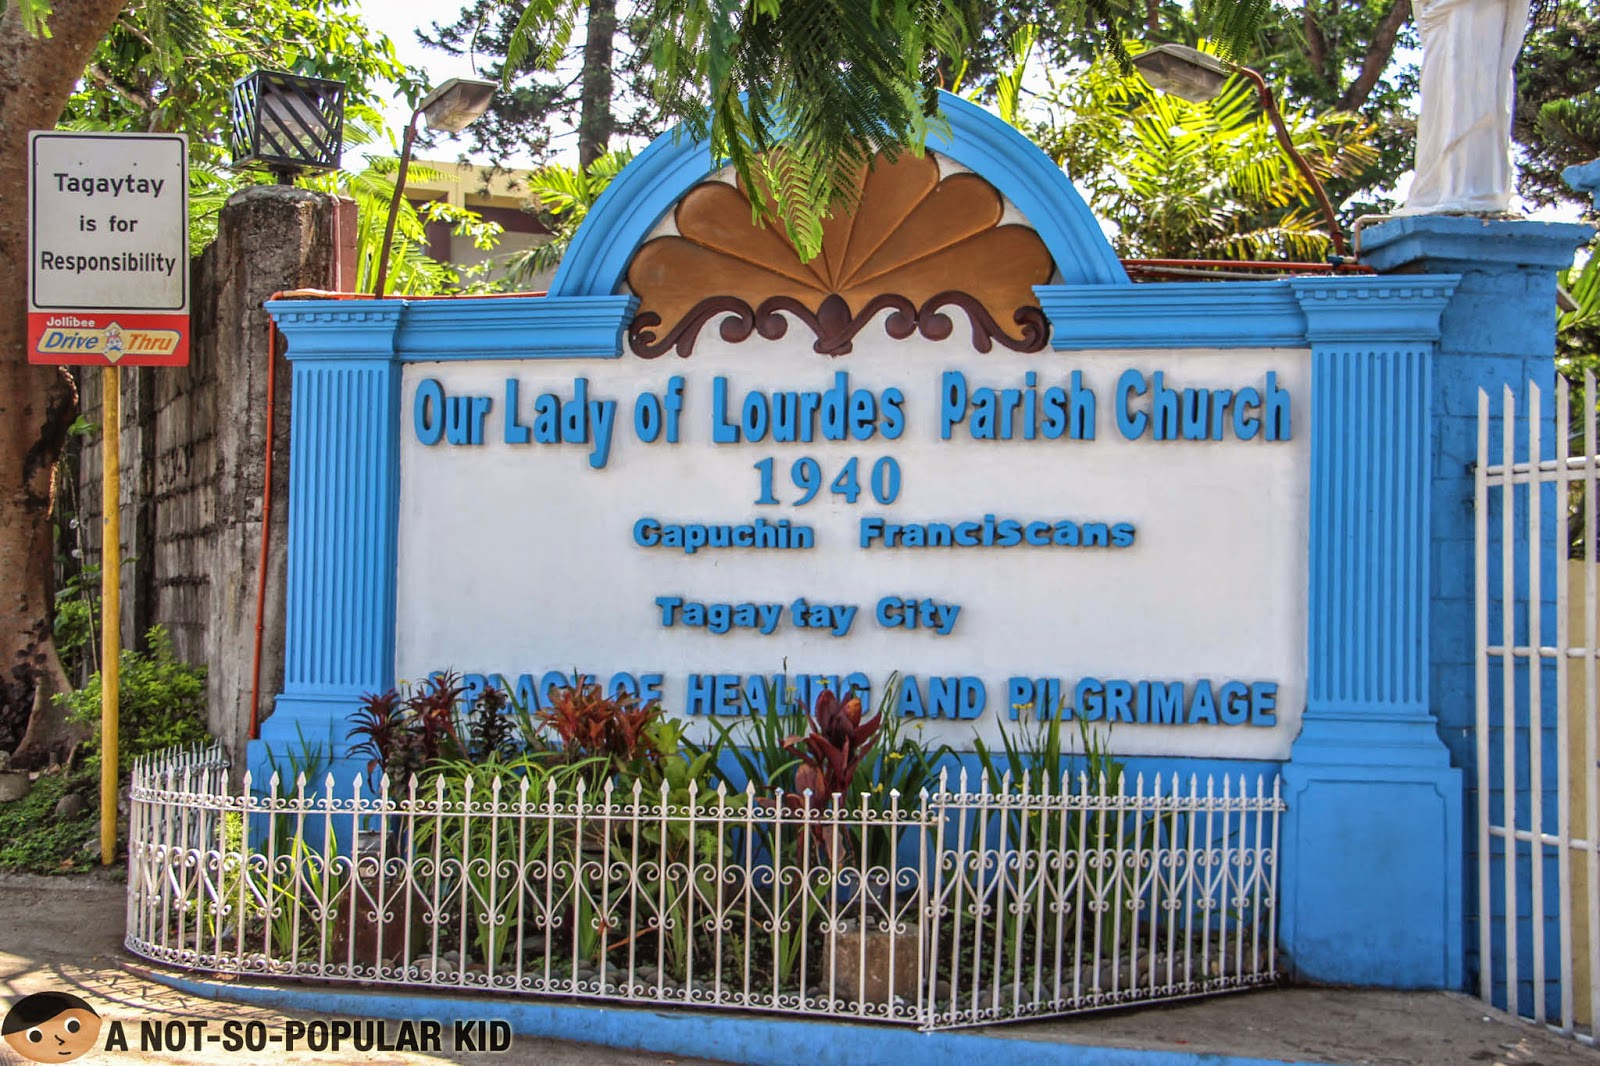 Our Lady of Lourdes Church - Tagaytay